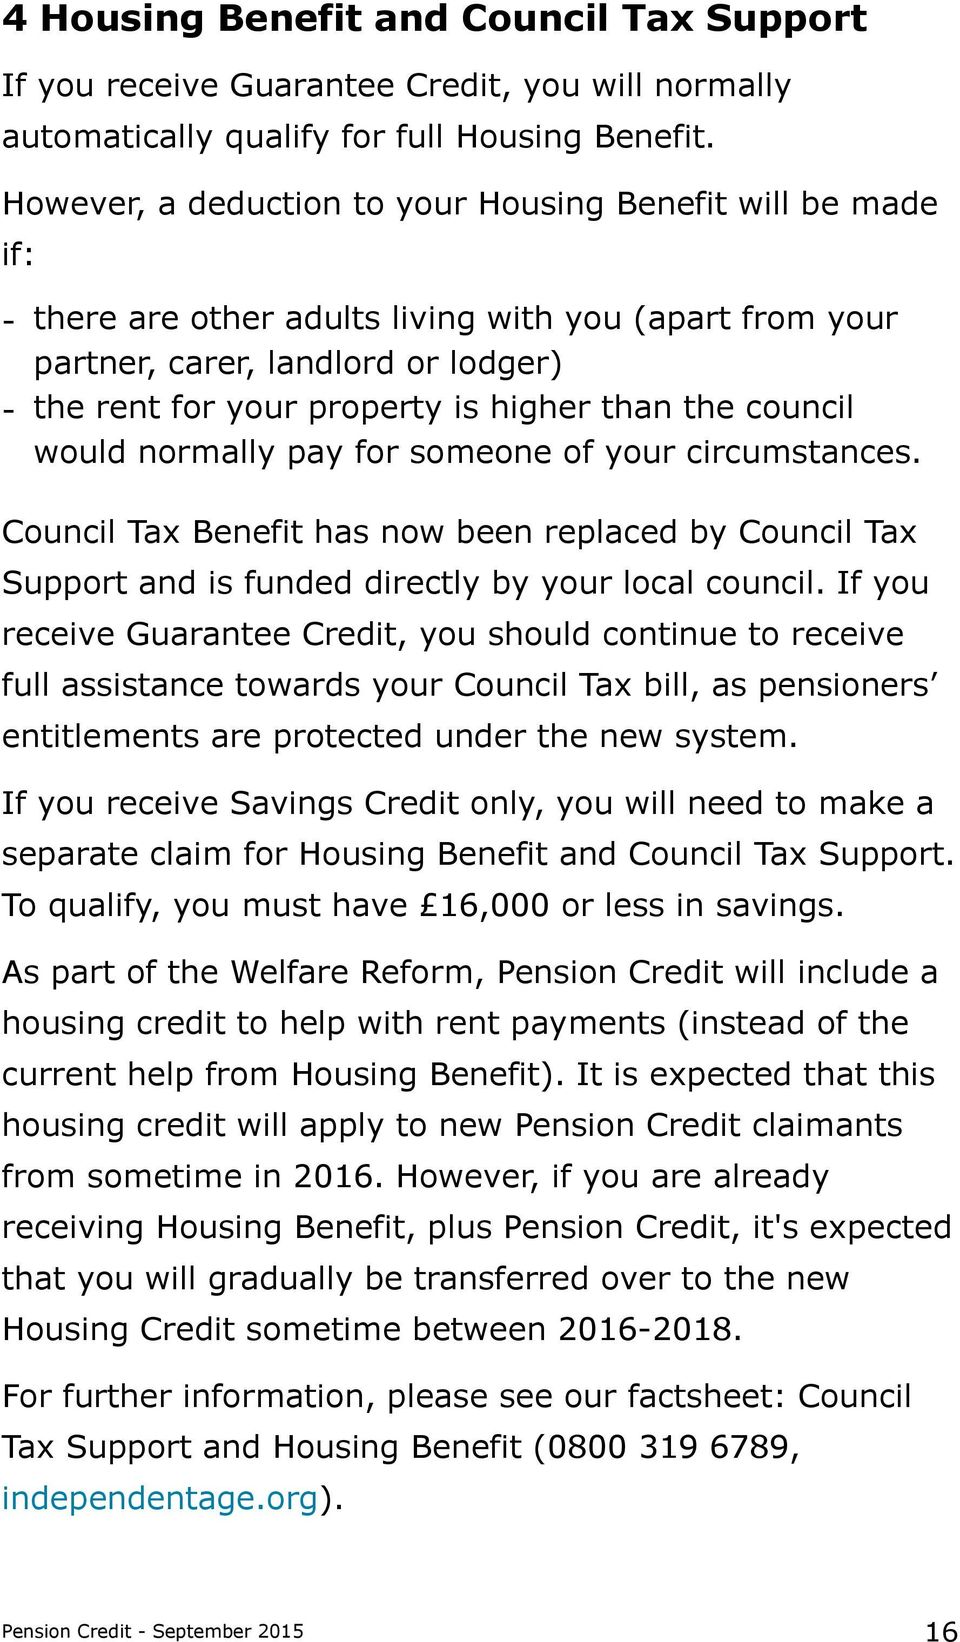 the council would normally pay for someone of your circumstances. Council Tax Benefit has now been replaced by Council Tax Support and is funded directly by your local council.